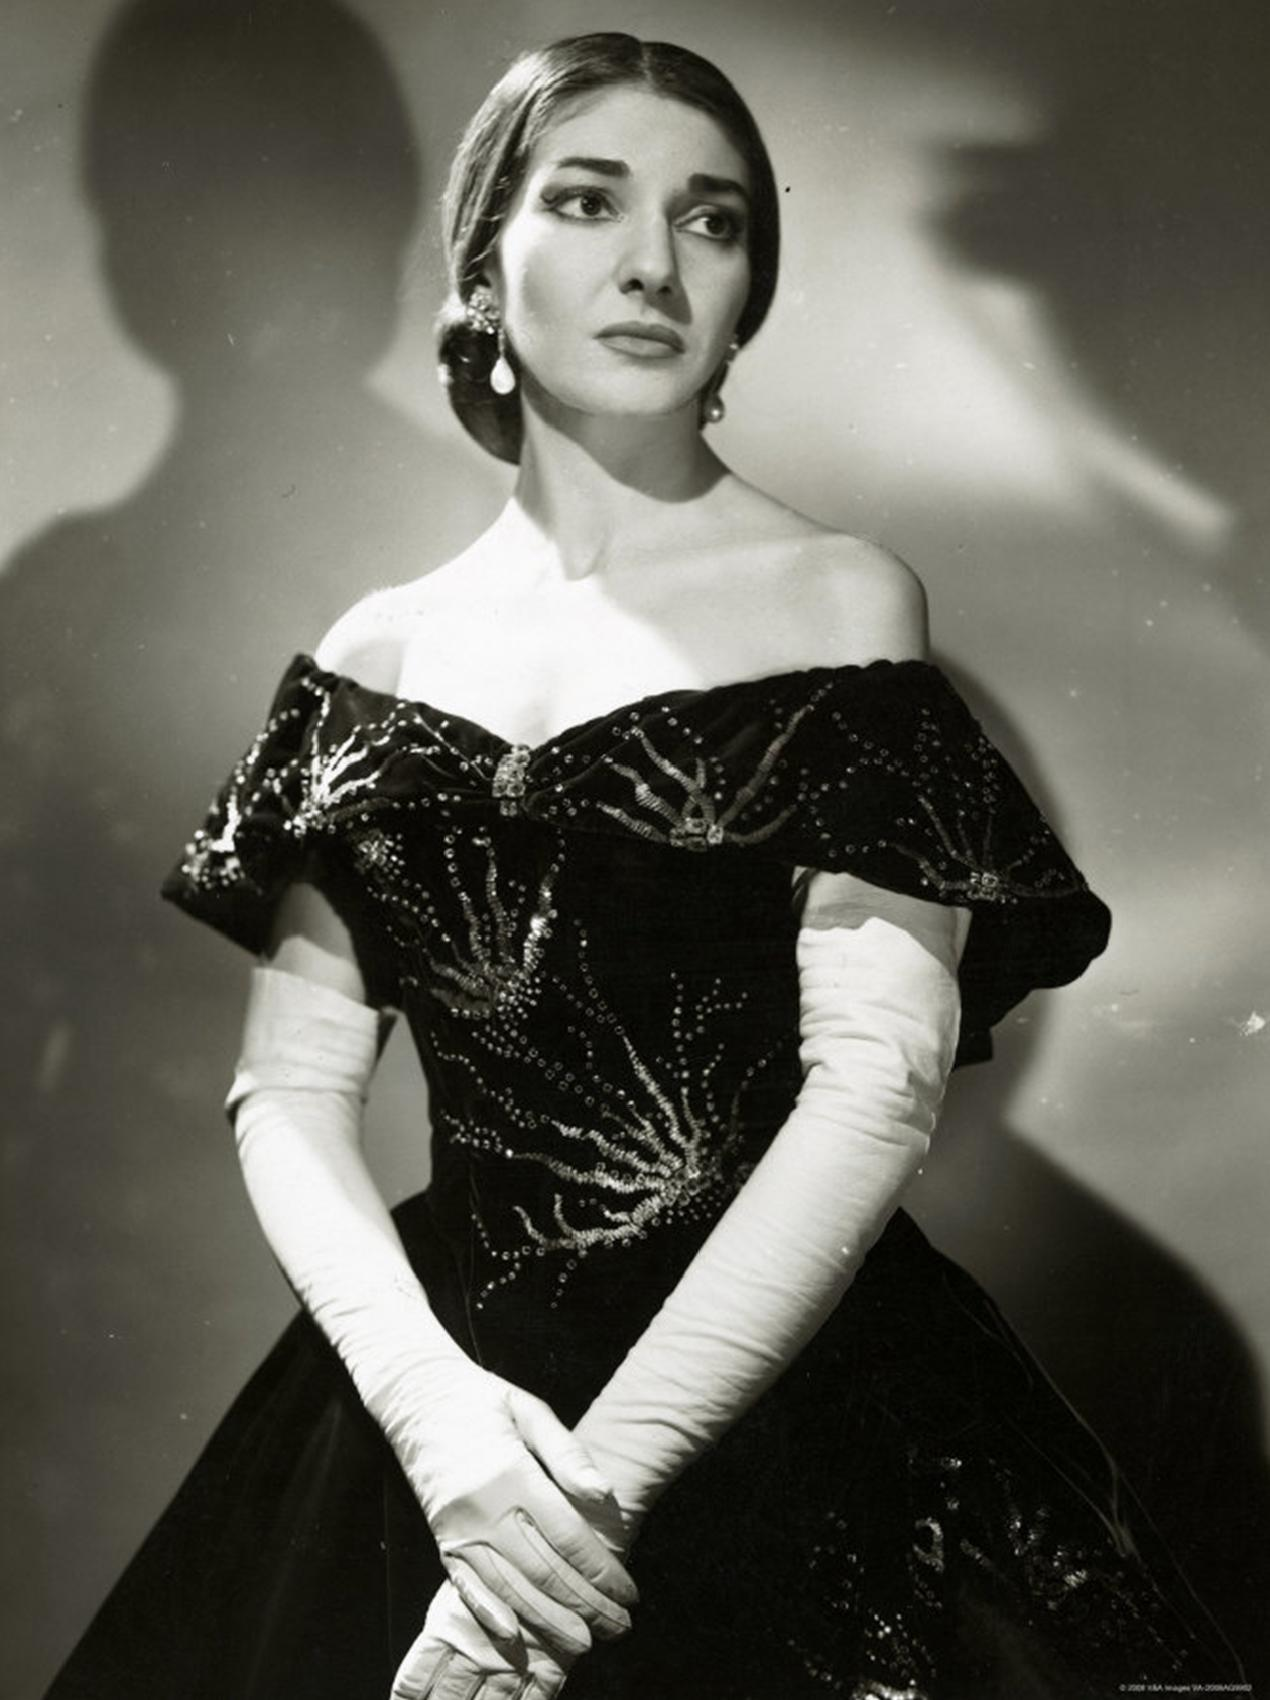 Publicity photo of Maria Callas (1923 – 1977) as Violetta in La Traviata at the Royal Opera House (1958) by photograph Houston Rogers